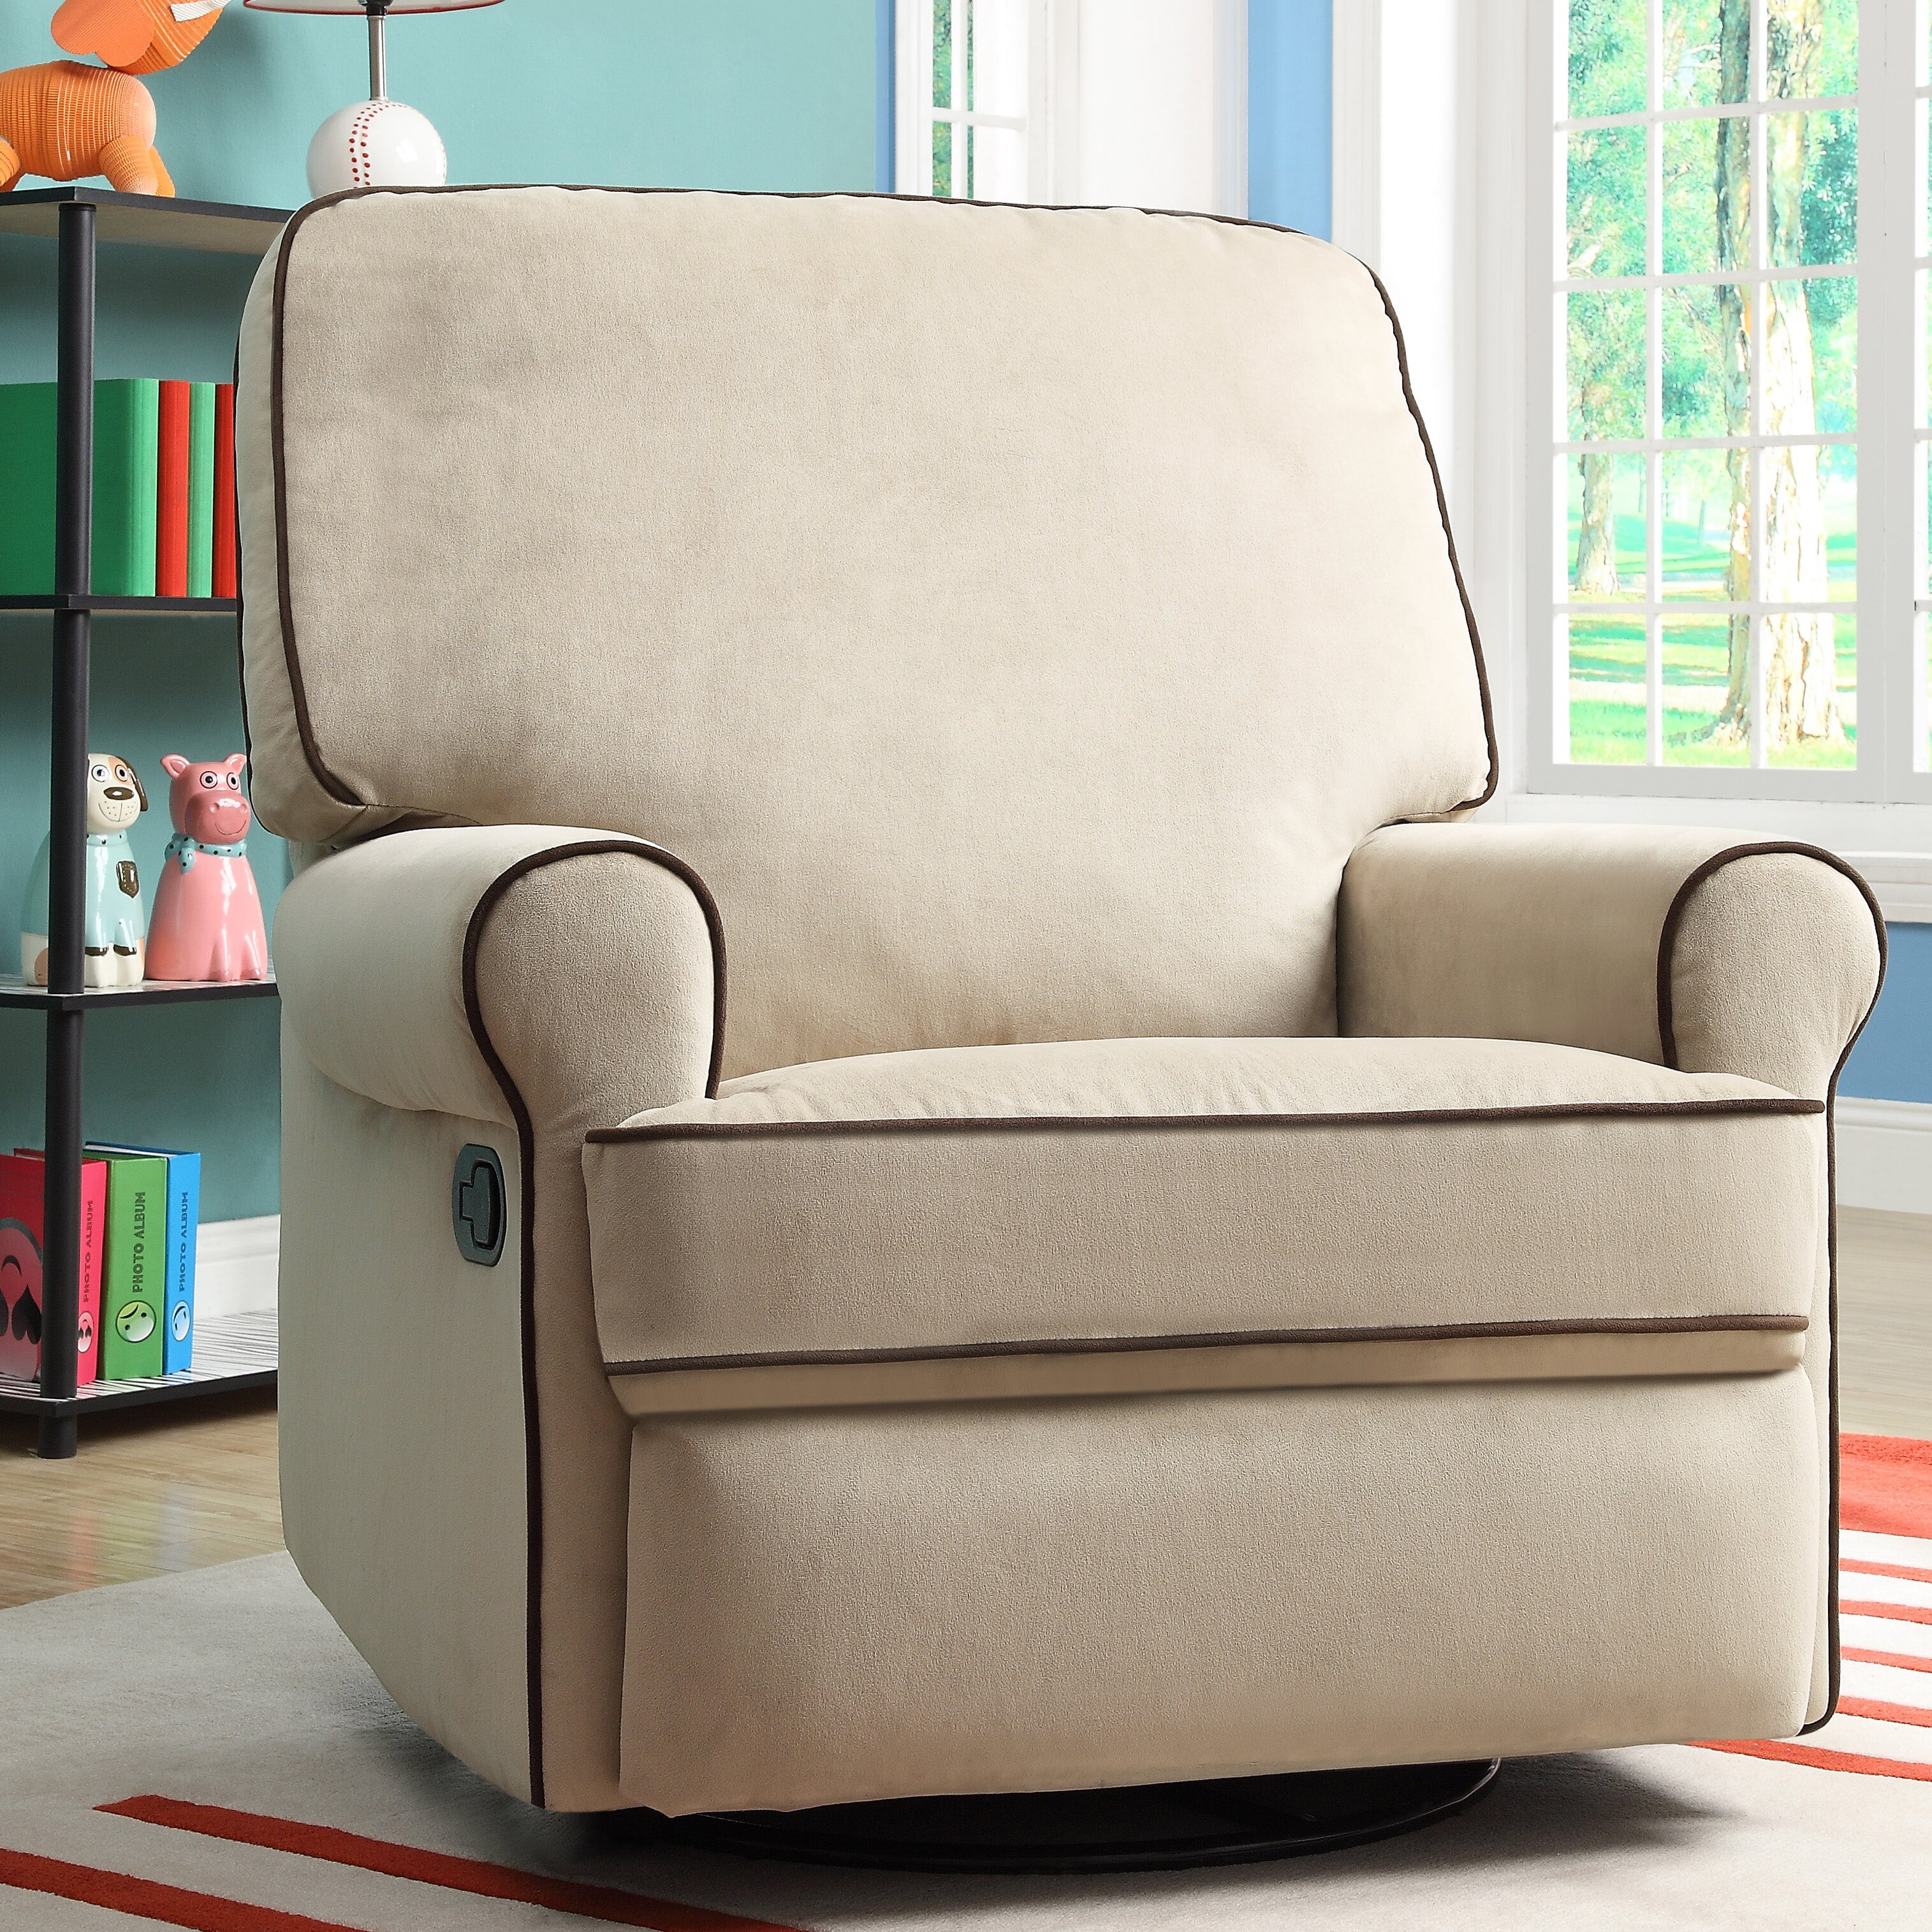 swivel recliner chairs for living room - Swivel Recliner Chairs For Living Room